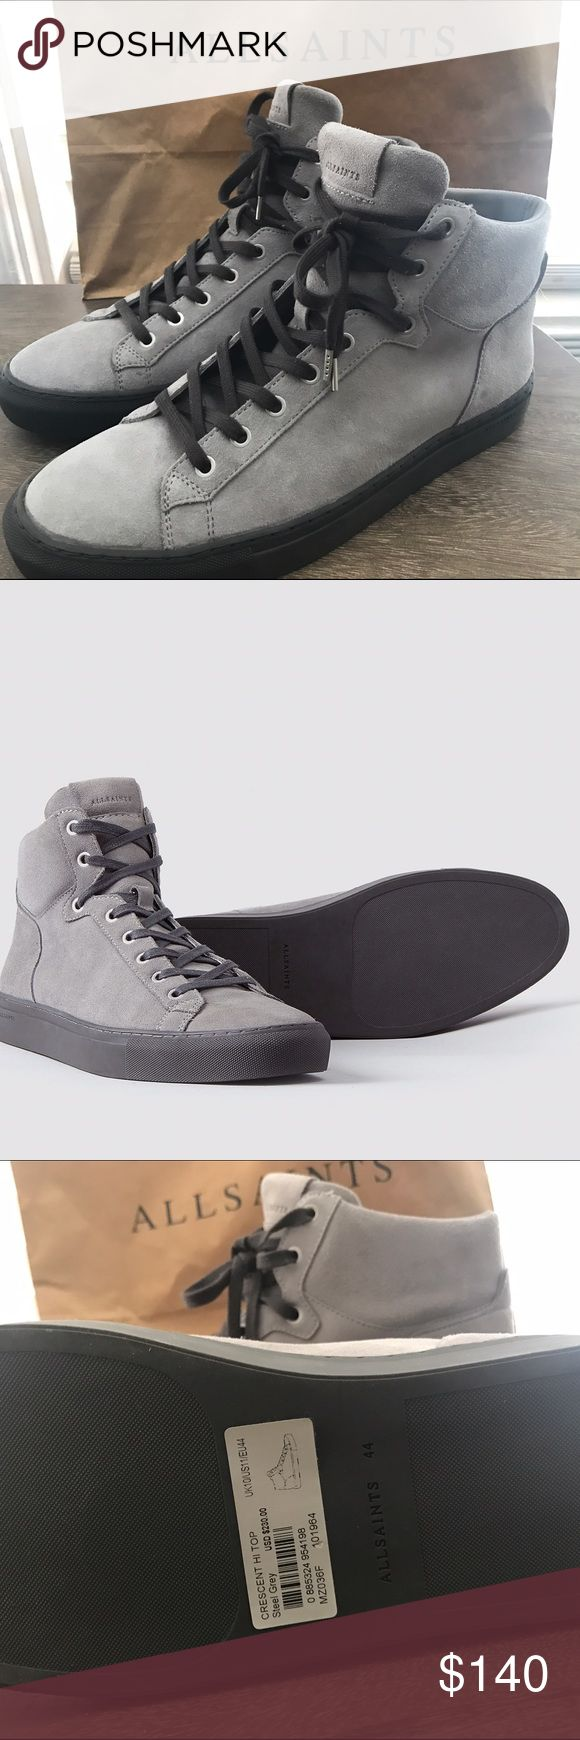 All Saints Crescent  Hi Top NWT. Purchased as a gift for my husband, and he kept them but they are a little too big for him as a 10.5 so never worn. They are leather trainers with a gray suede exterior. Size 44 (11 for men) We don't have the box anymore, but I still have the shopping bag and will ship with that. Great all year round.  Model: CRESCENT HI TOP  Model Number: MZ001F  Numerous trimmings and detailing throughout the trainers including All Saints embossed on the exterior tongue…